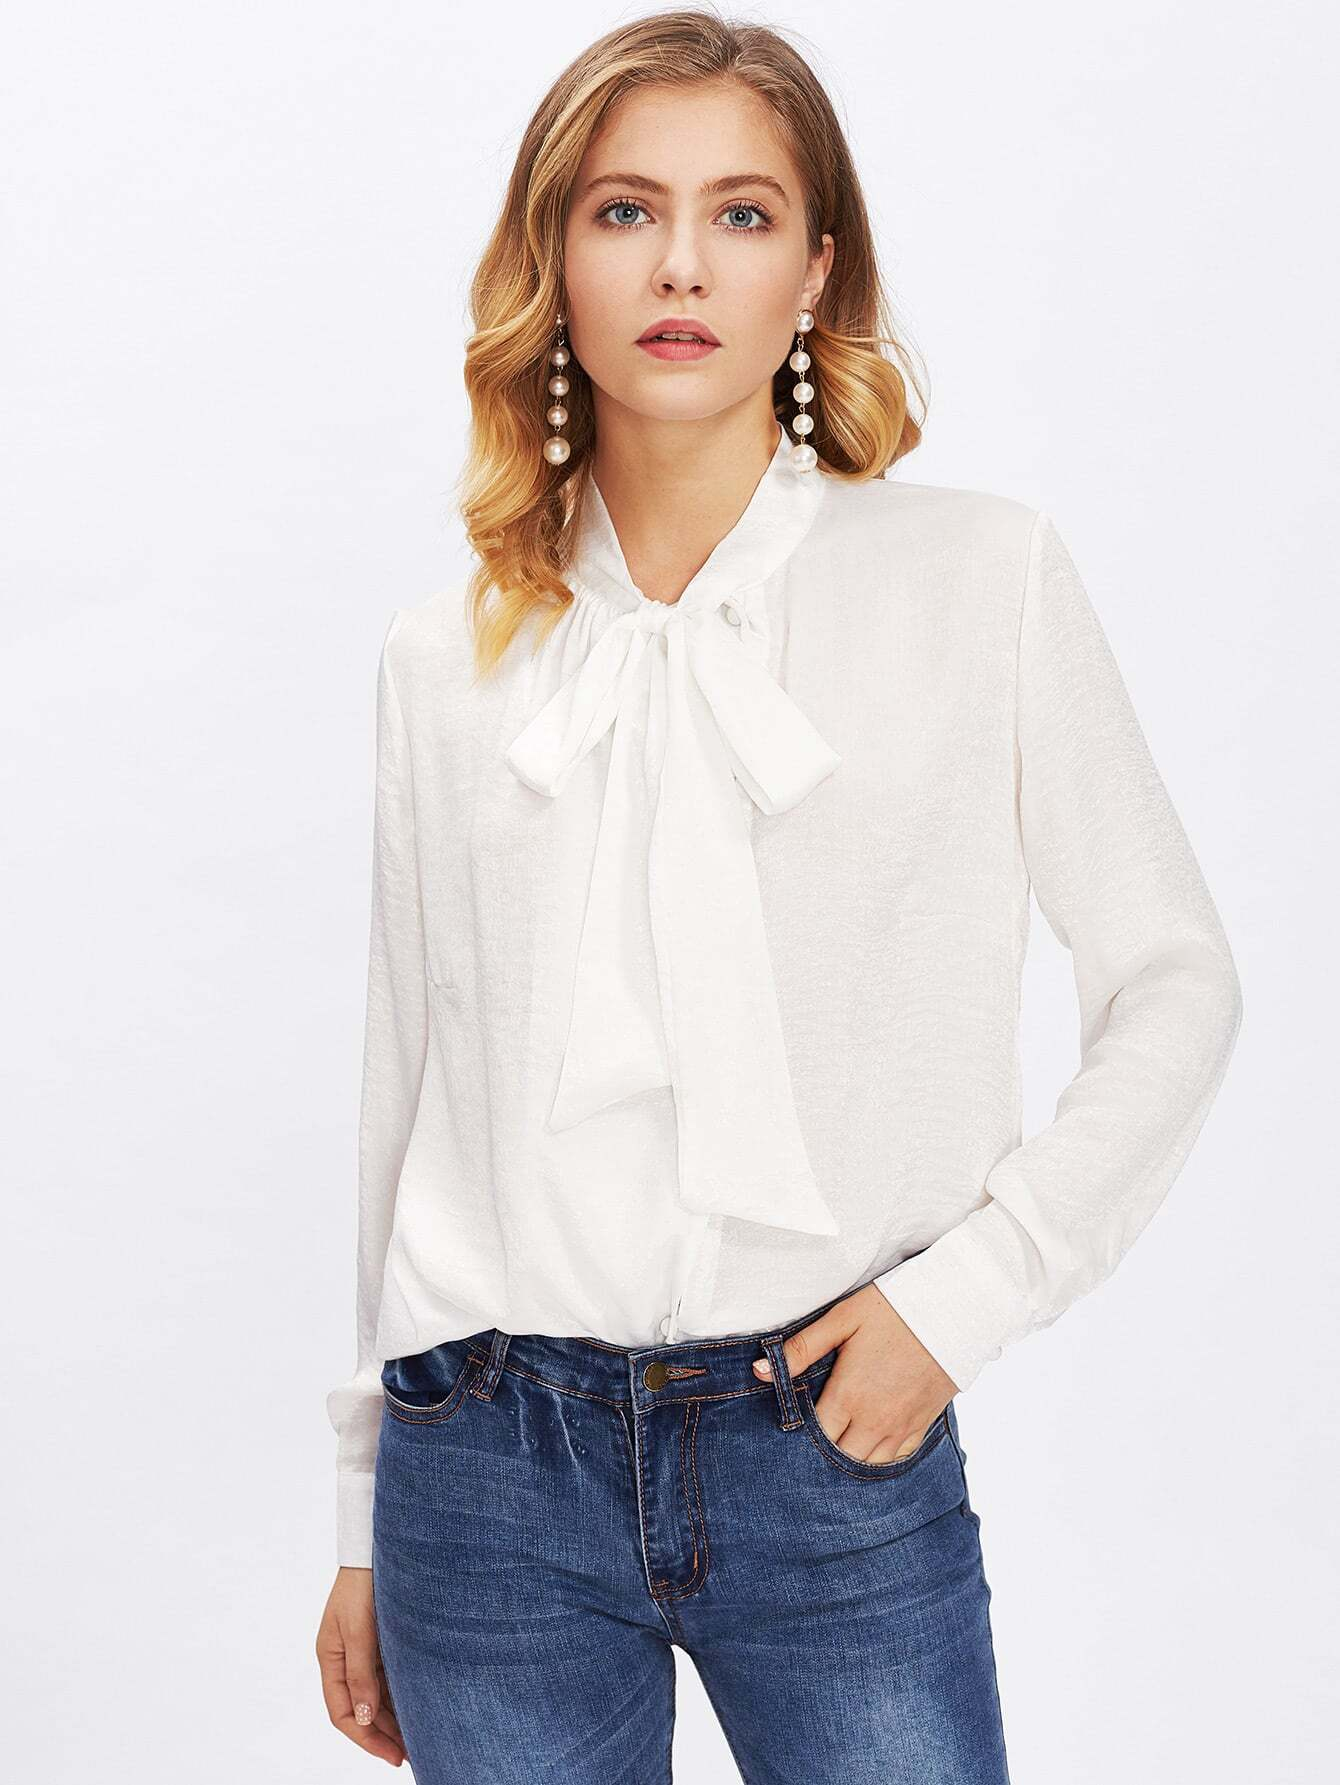 Easy blouse with a tie-front design, soft and lightweight fabric and button-front accent. Imported/5(62).